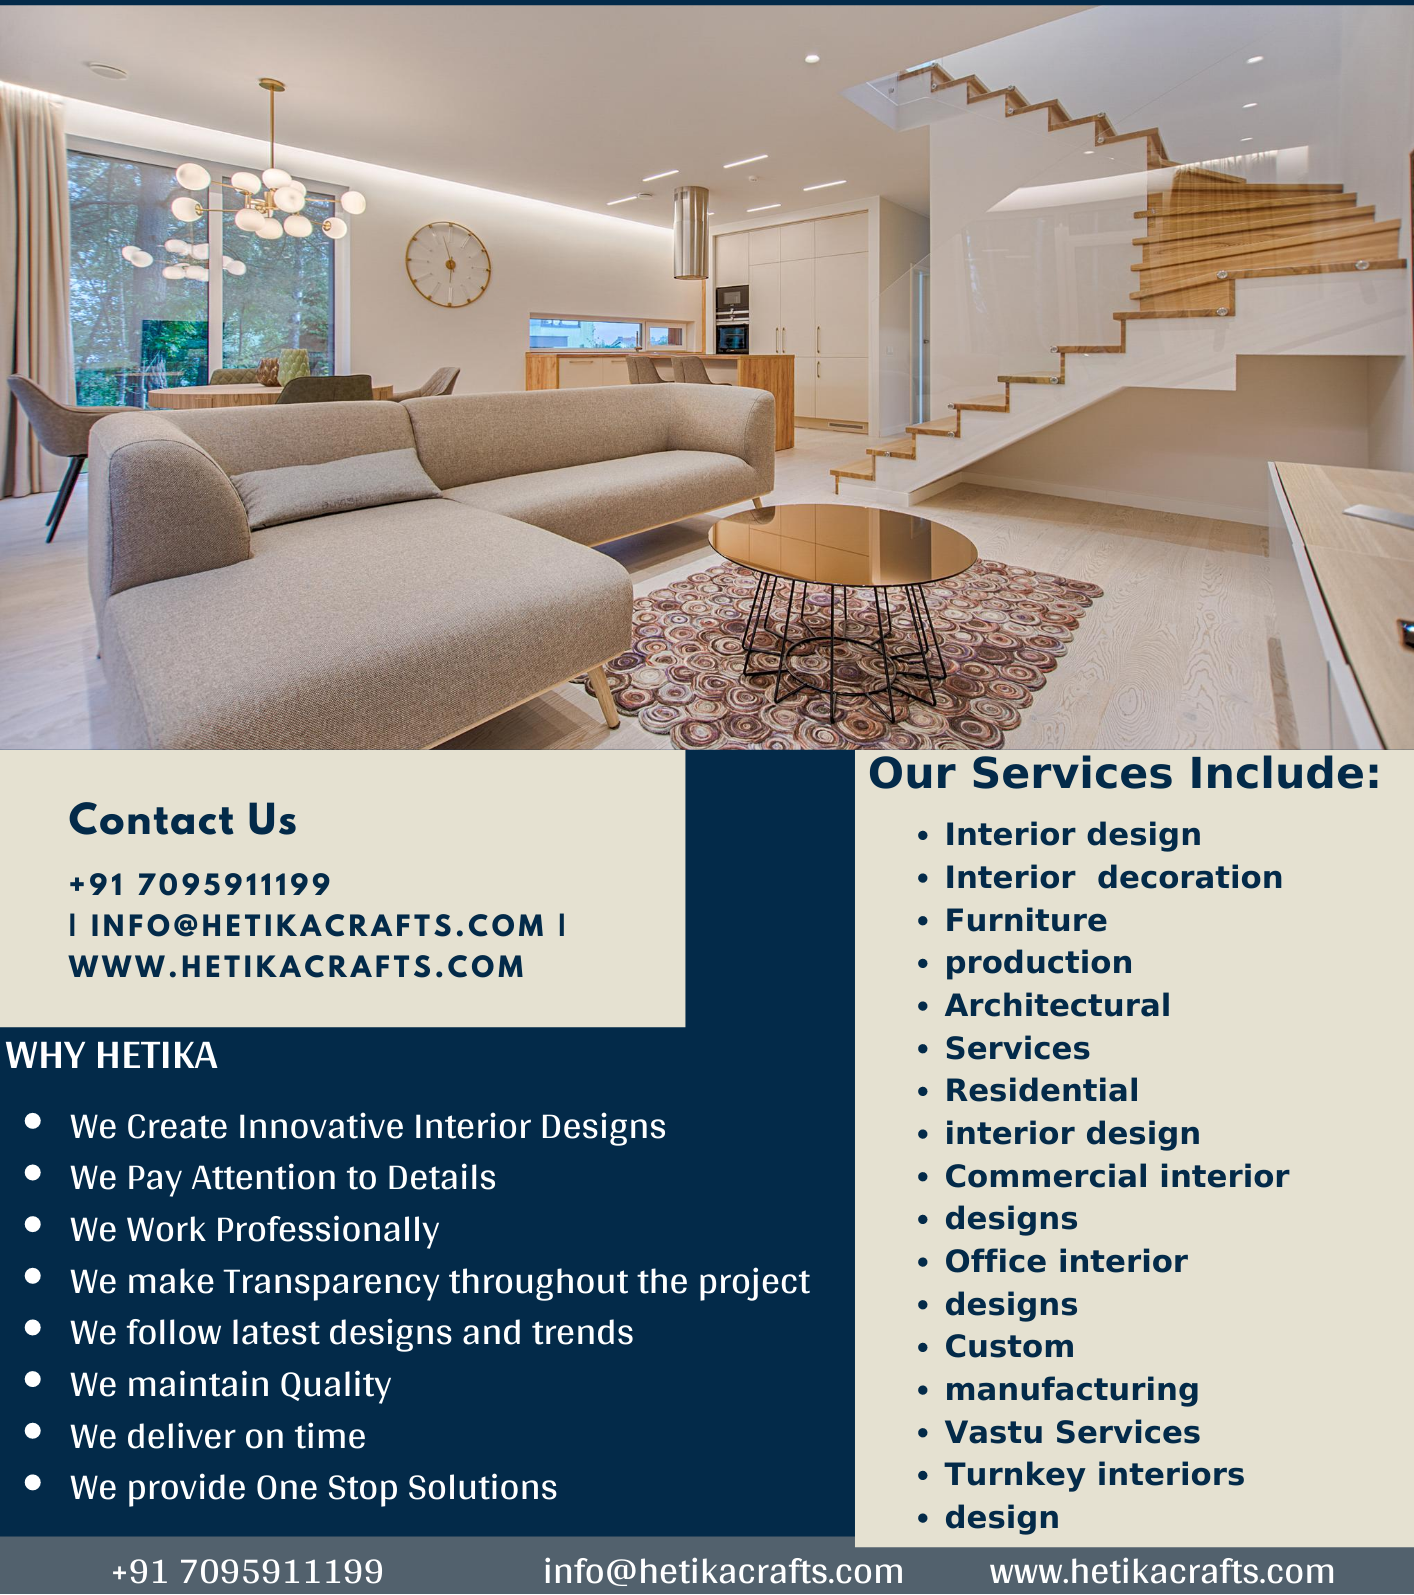 We Design Beautiful Homes for Every Dream